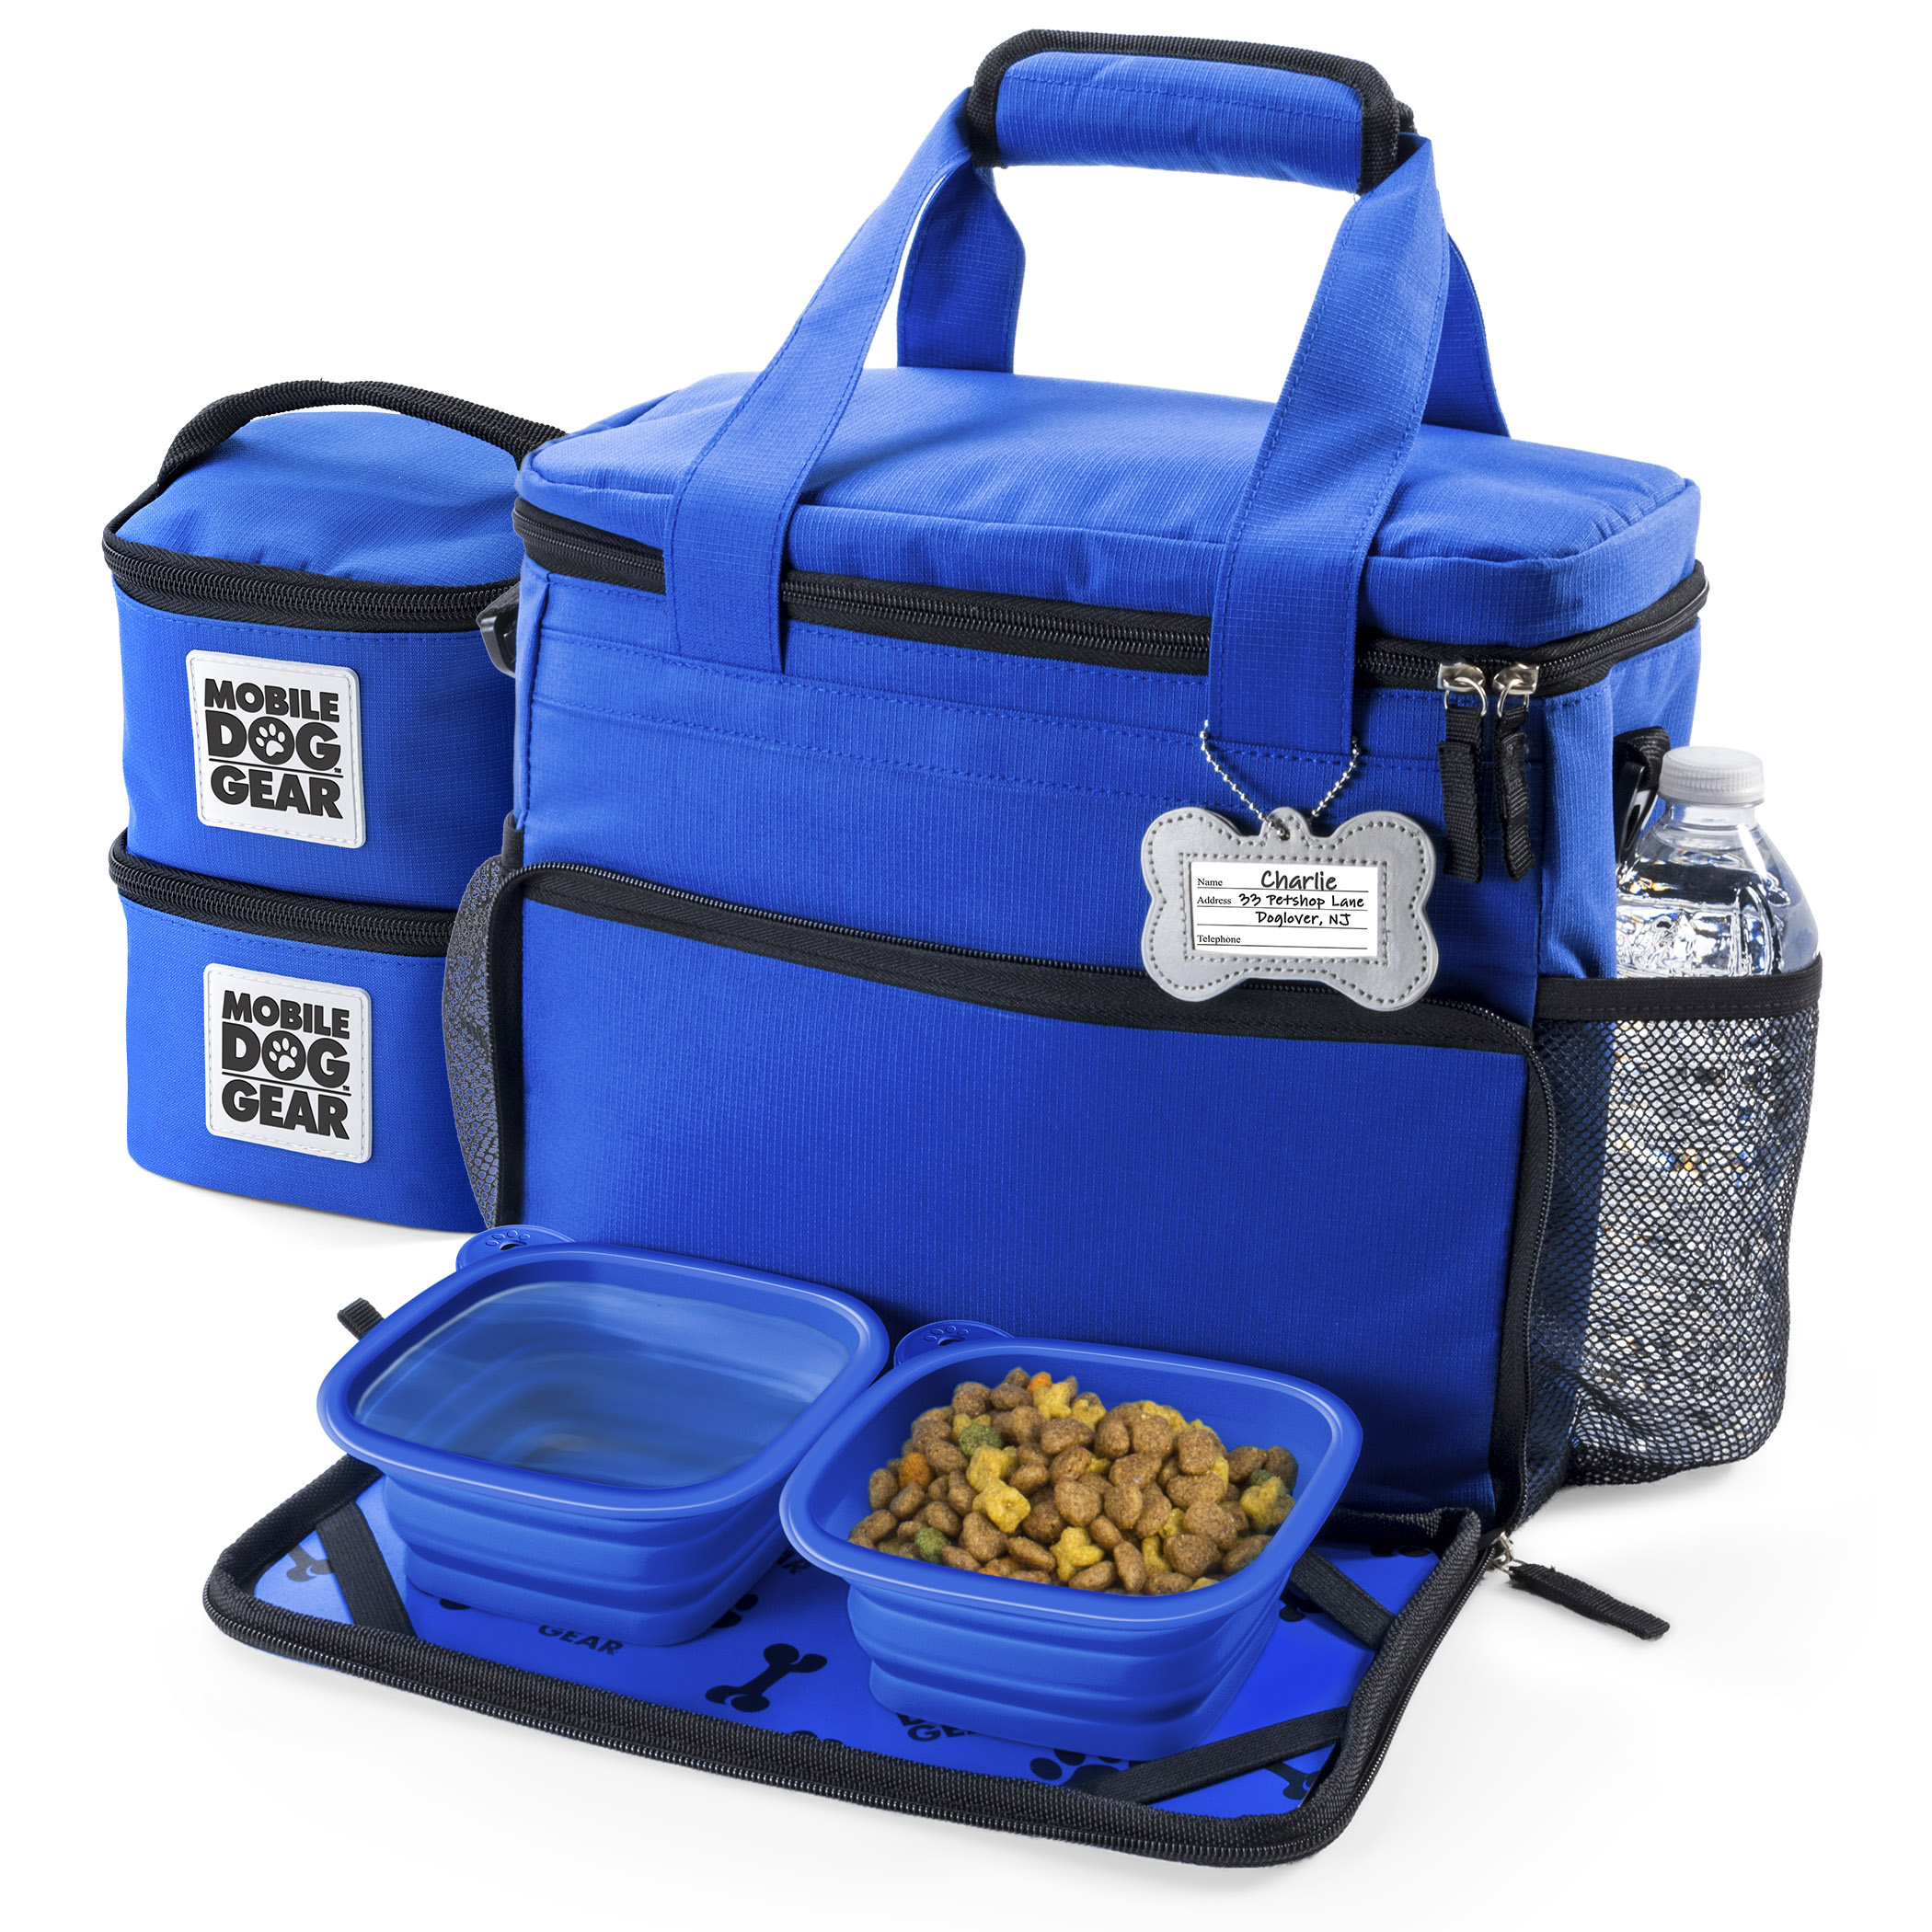 MDG SM Week Away-Blue Bag Shot and food carriers closedSquare.jpg